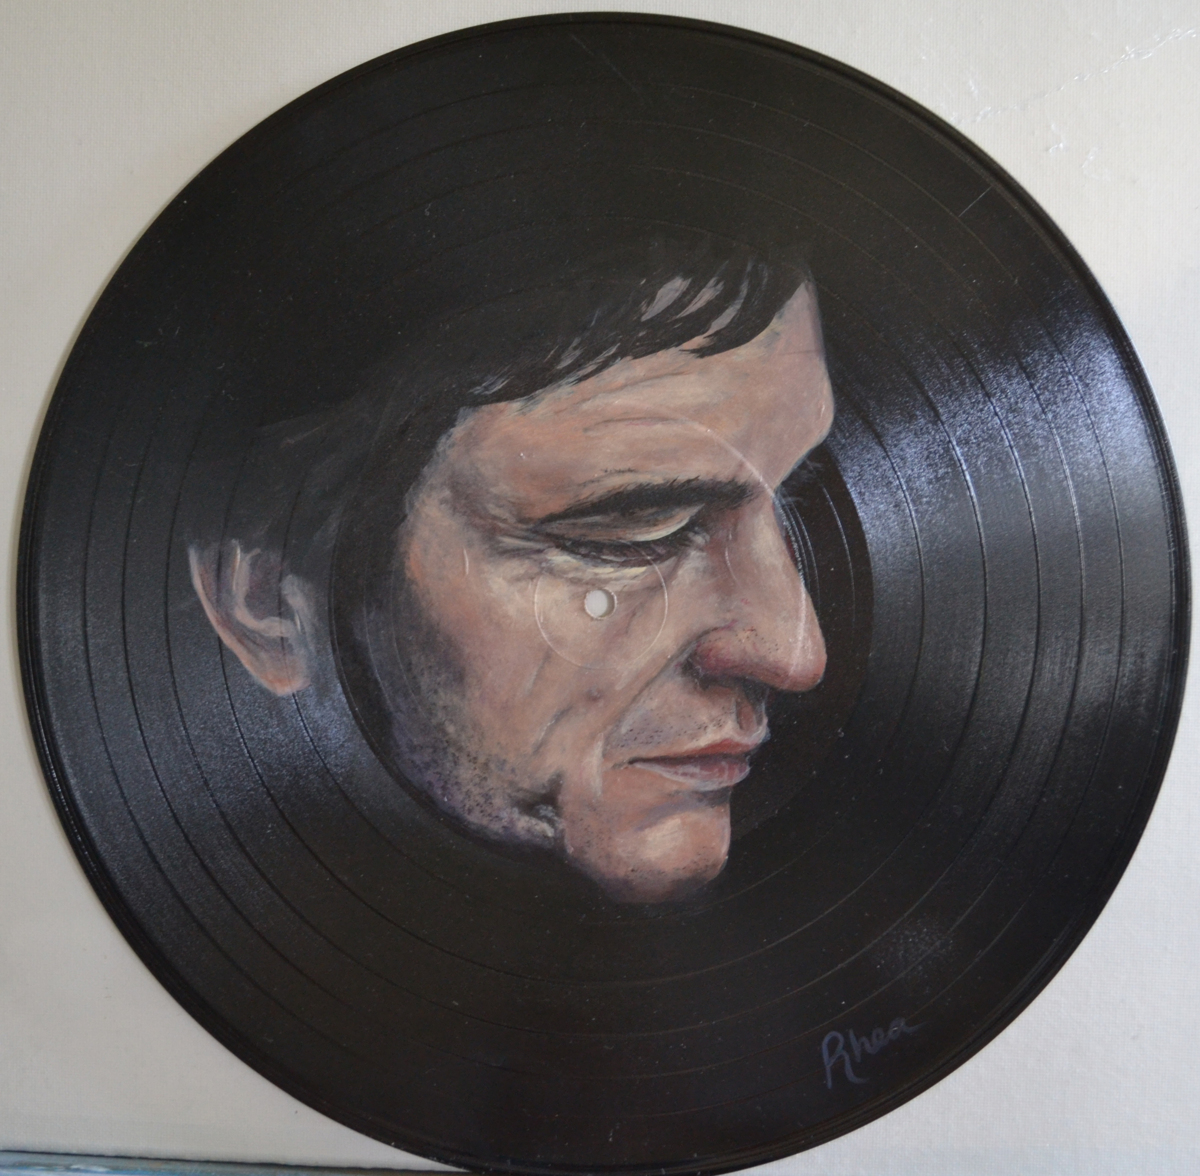 Johnny Cash (large view)